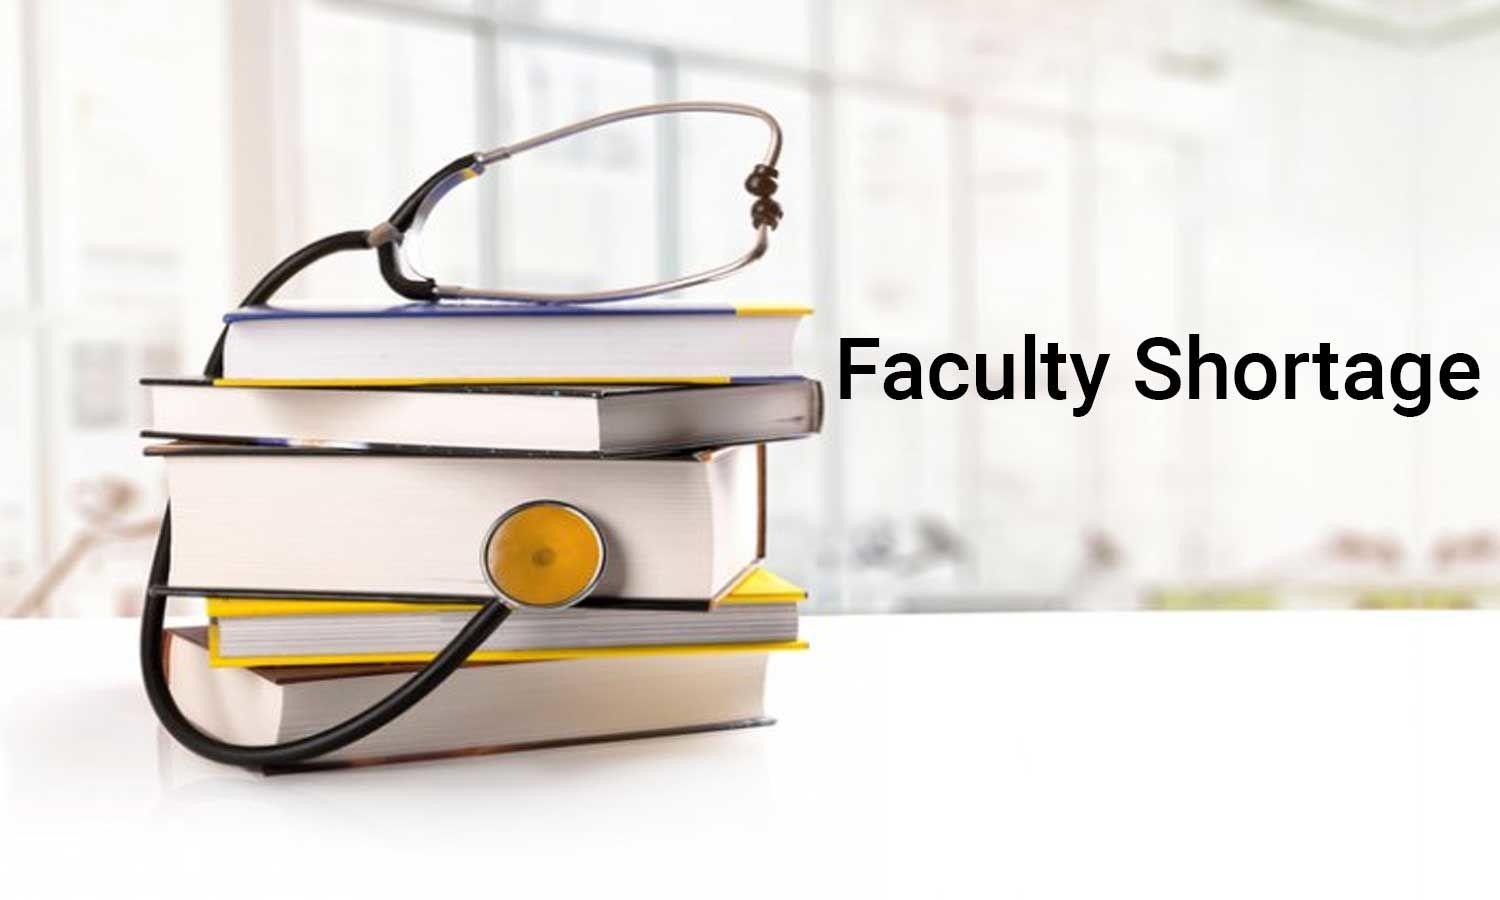 Visiting faculty in Medical Colleges: Professor to get Rs 10,000; AP to get Rs 8000 for 10 days in Jammu and Kashmir